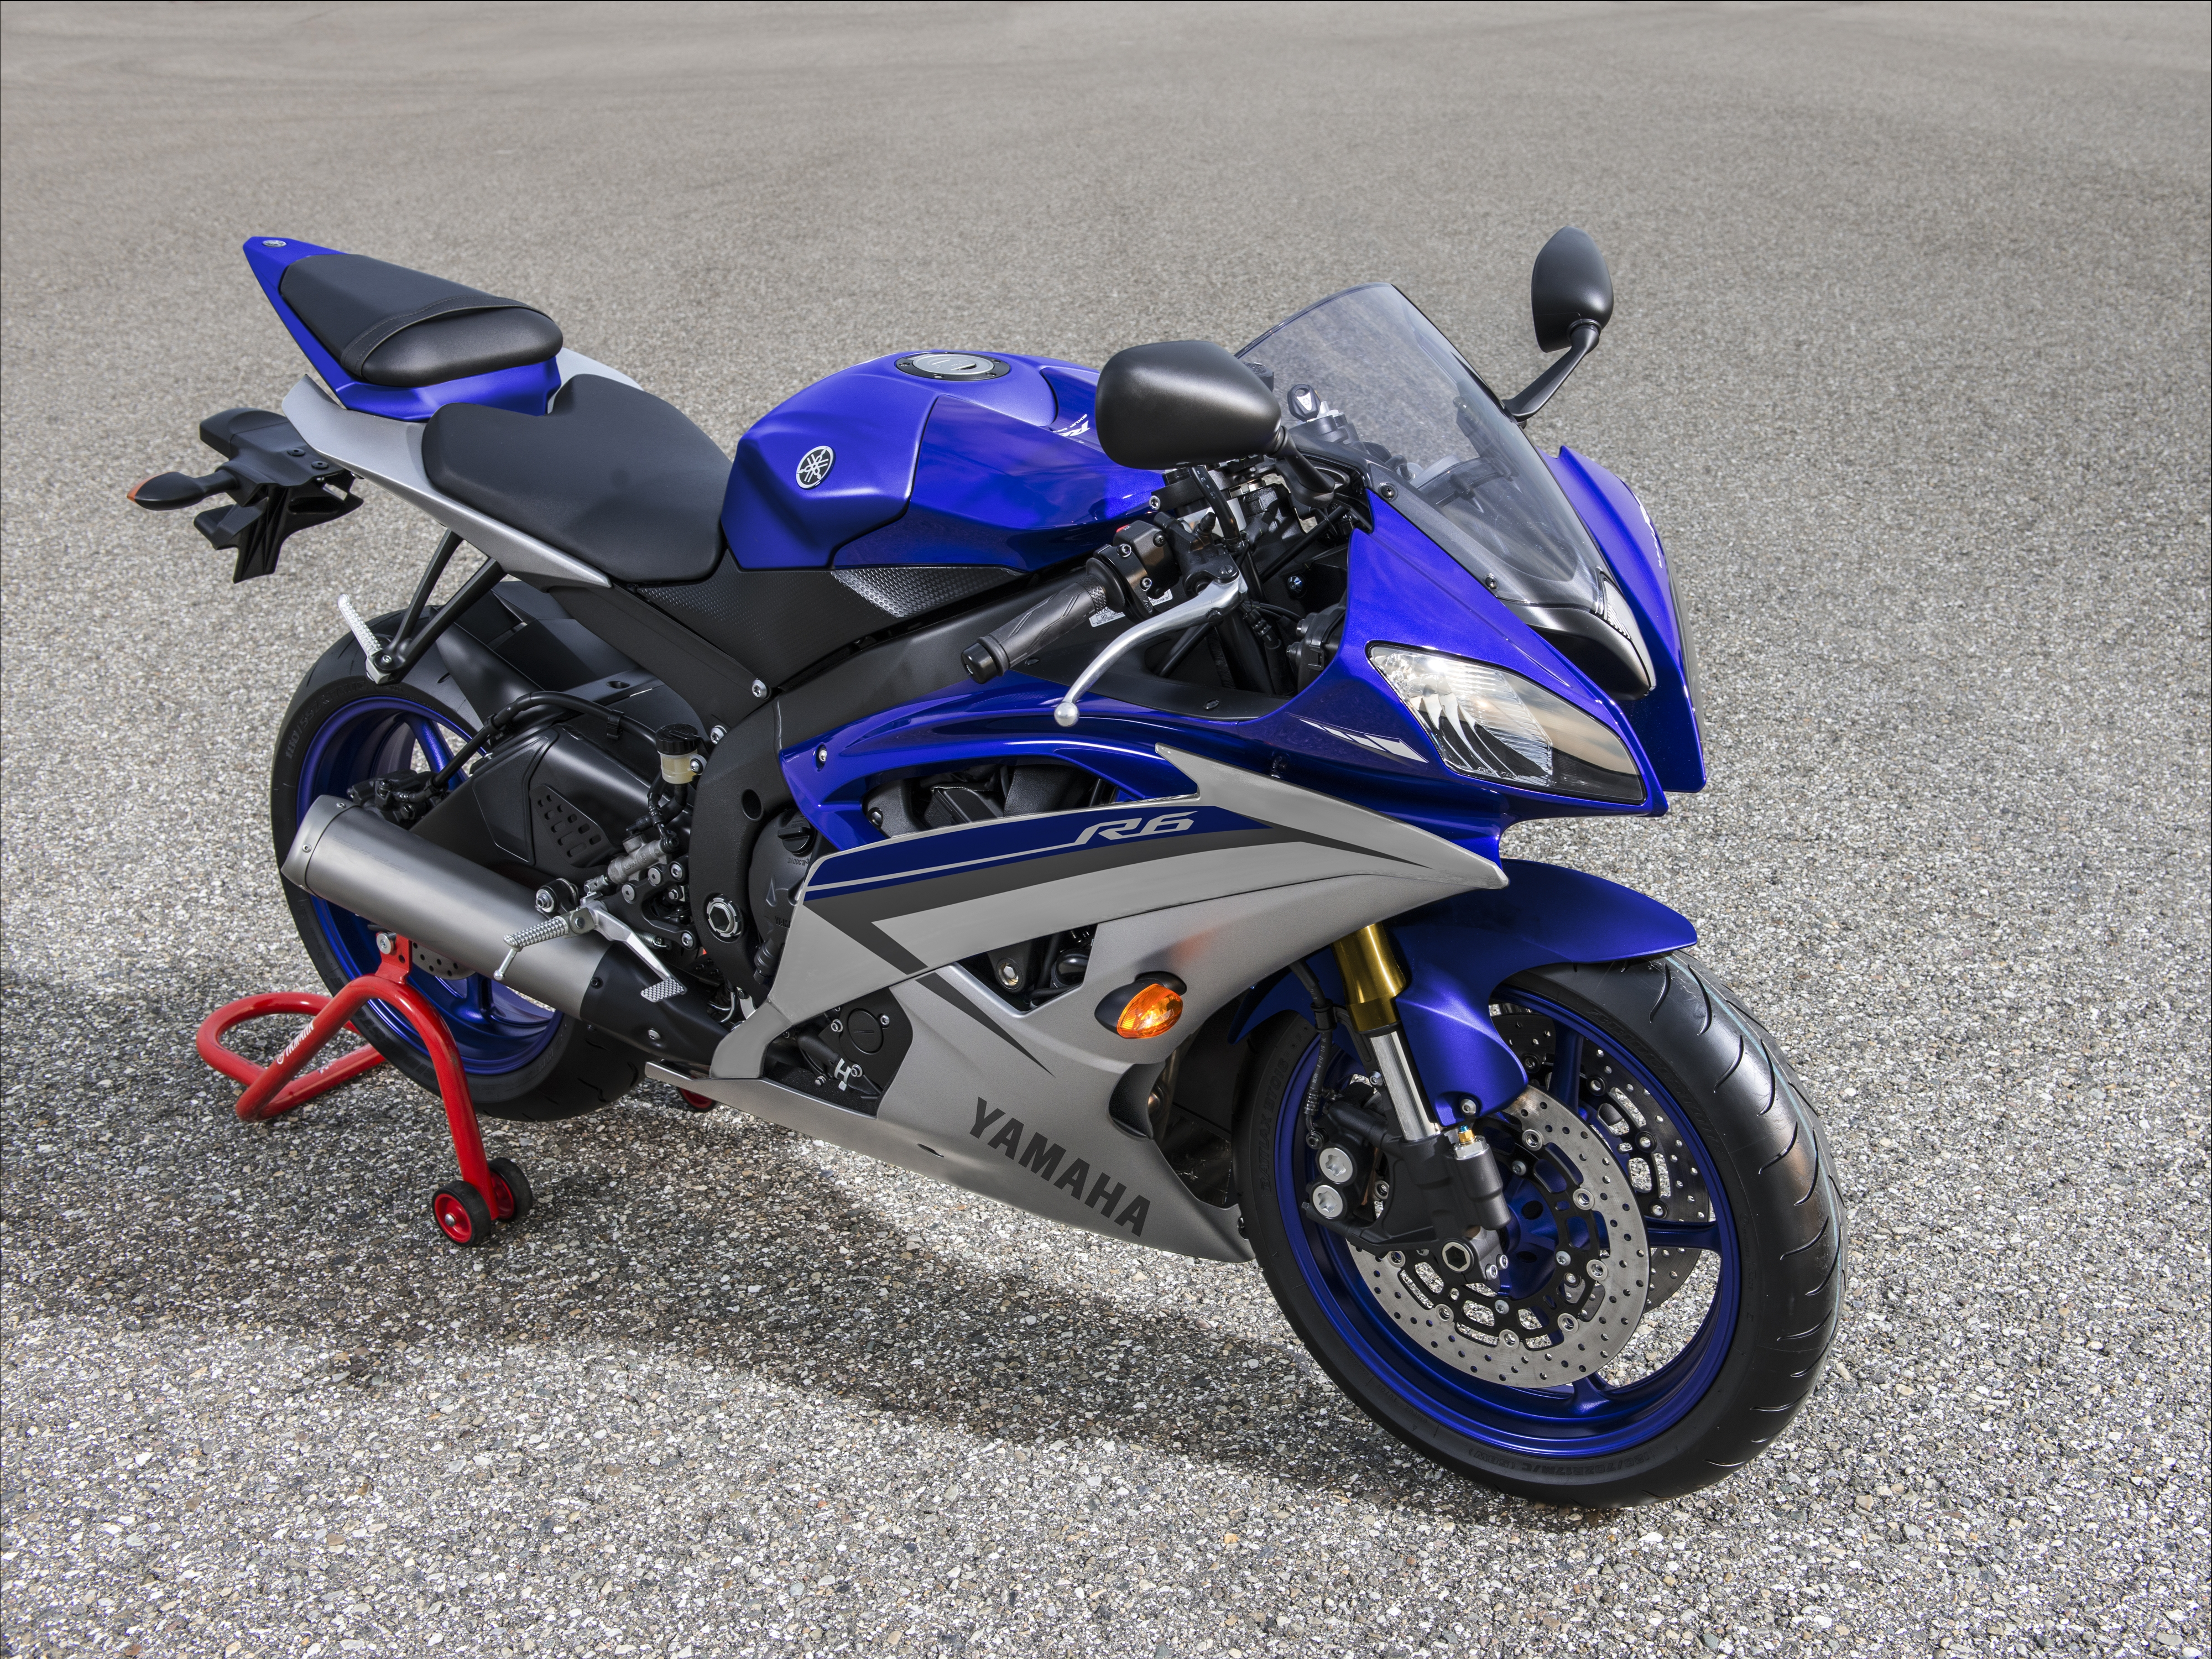 New colours for Yamaha R6 and R125